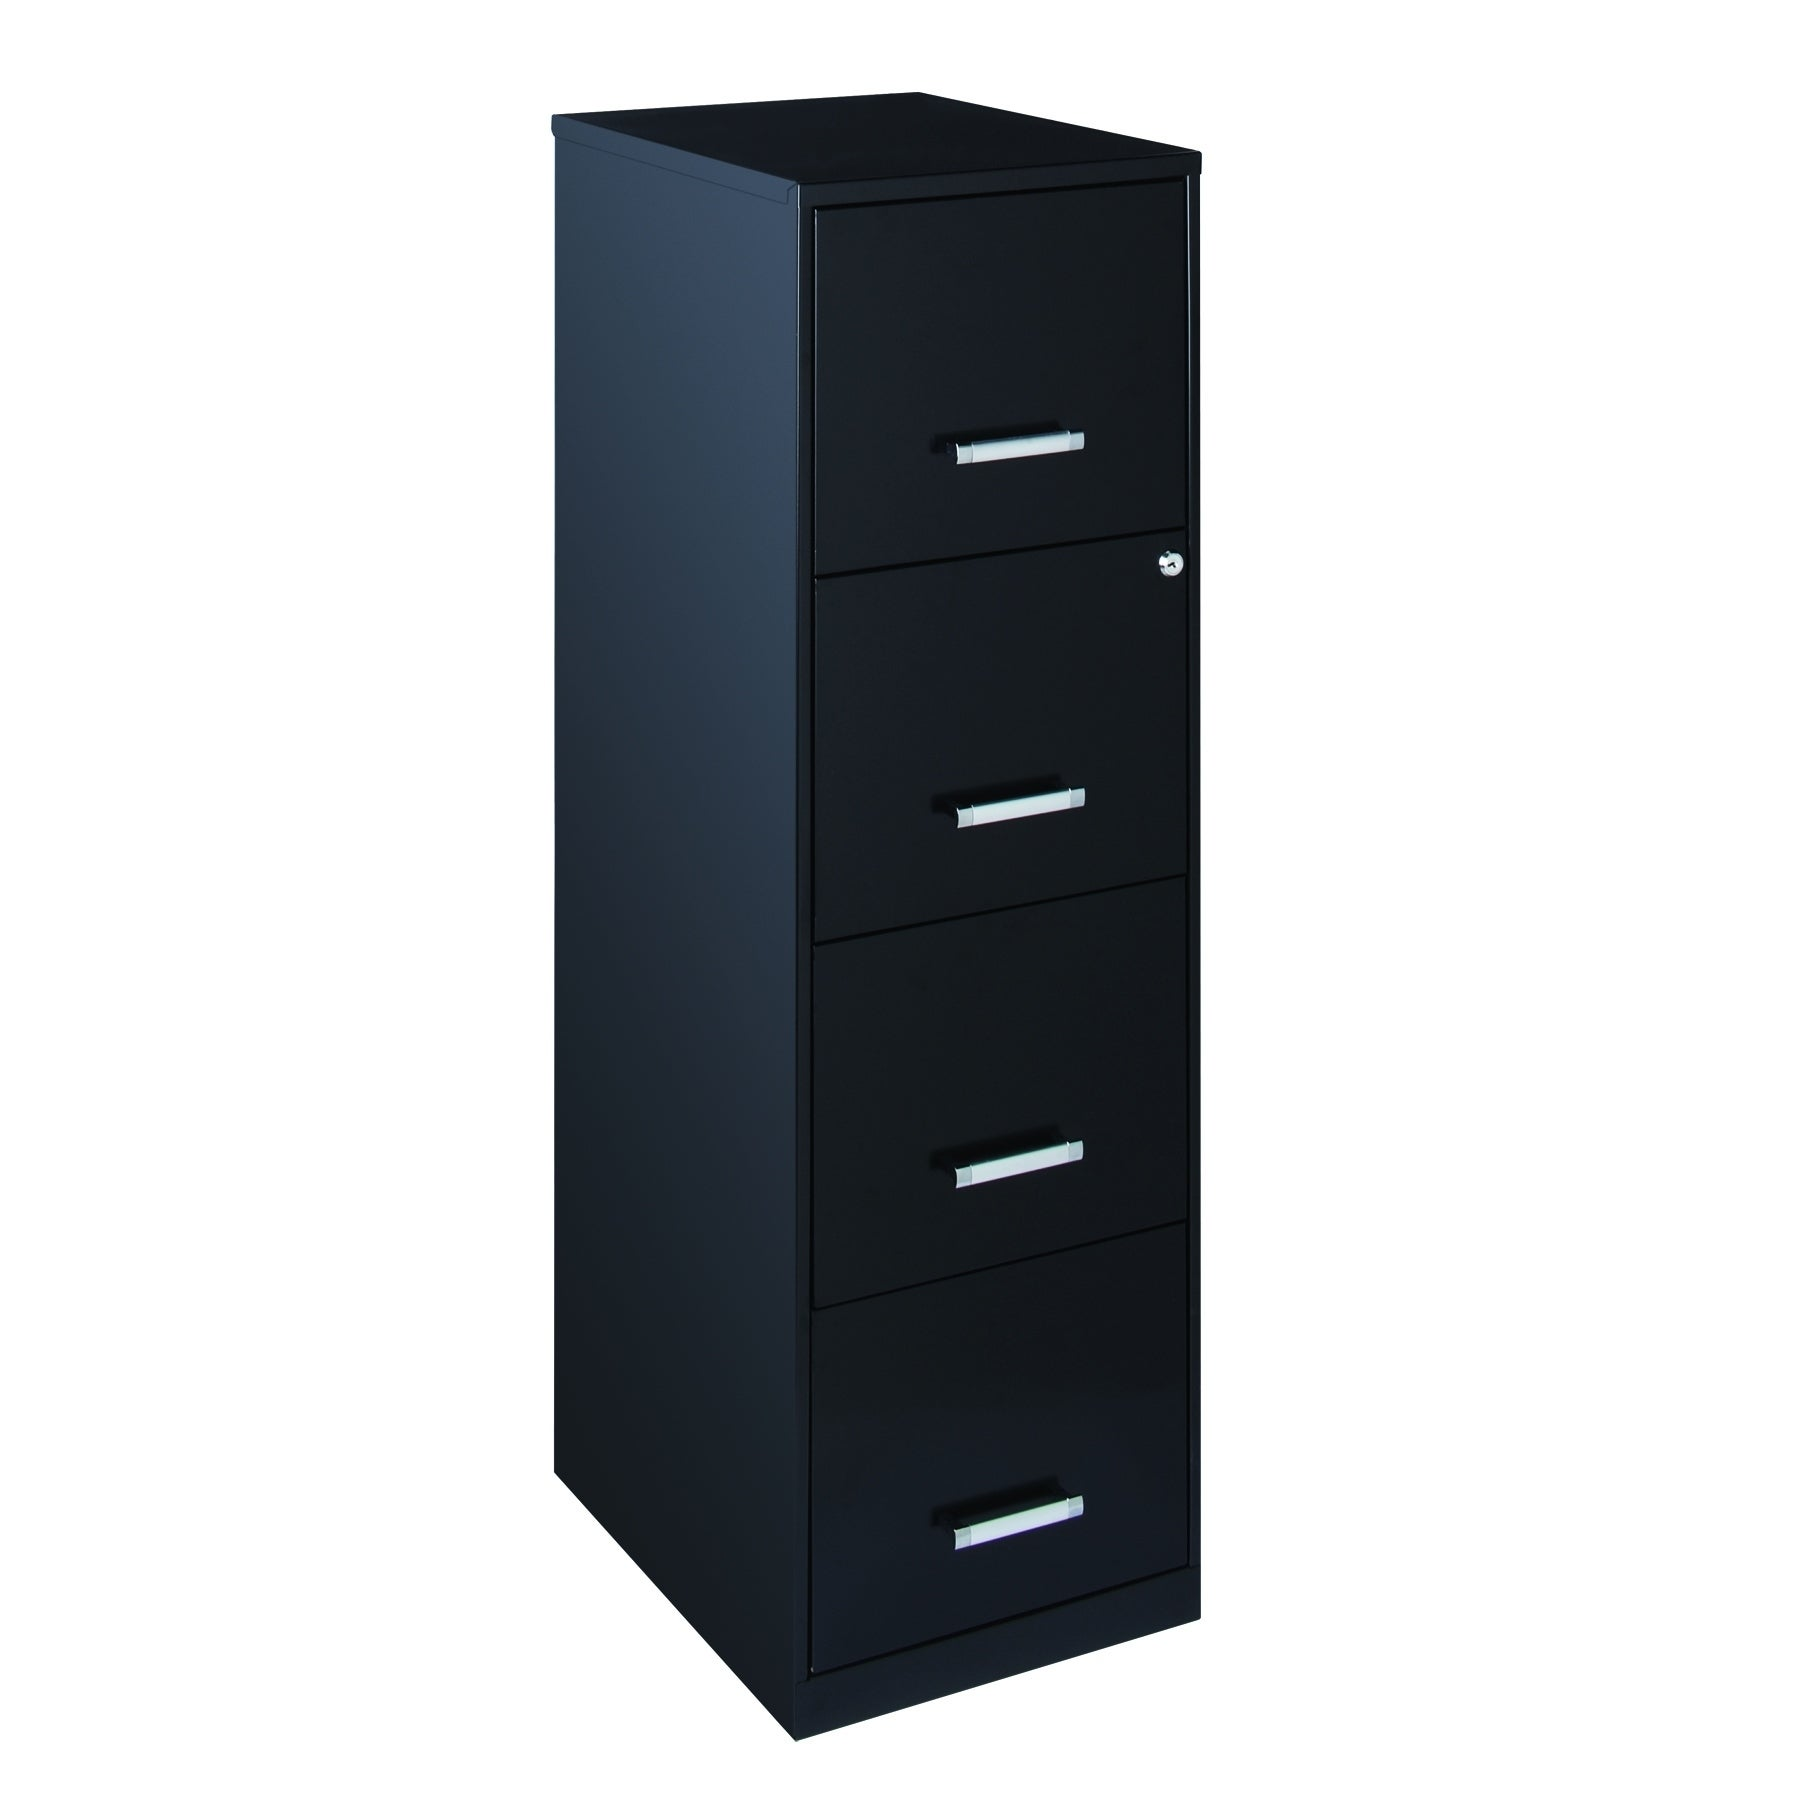 18  4 Drawer Metal File Cabinet - Black  sc 1 st  Overstock.com : wooden file cabinets 4 drawer - Cheerinfomania.Com